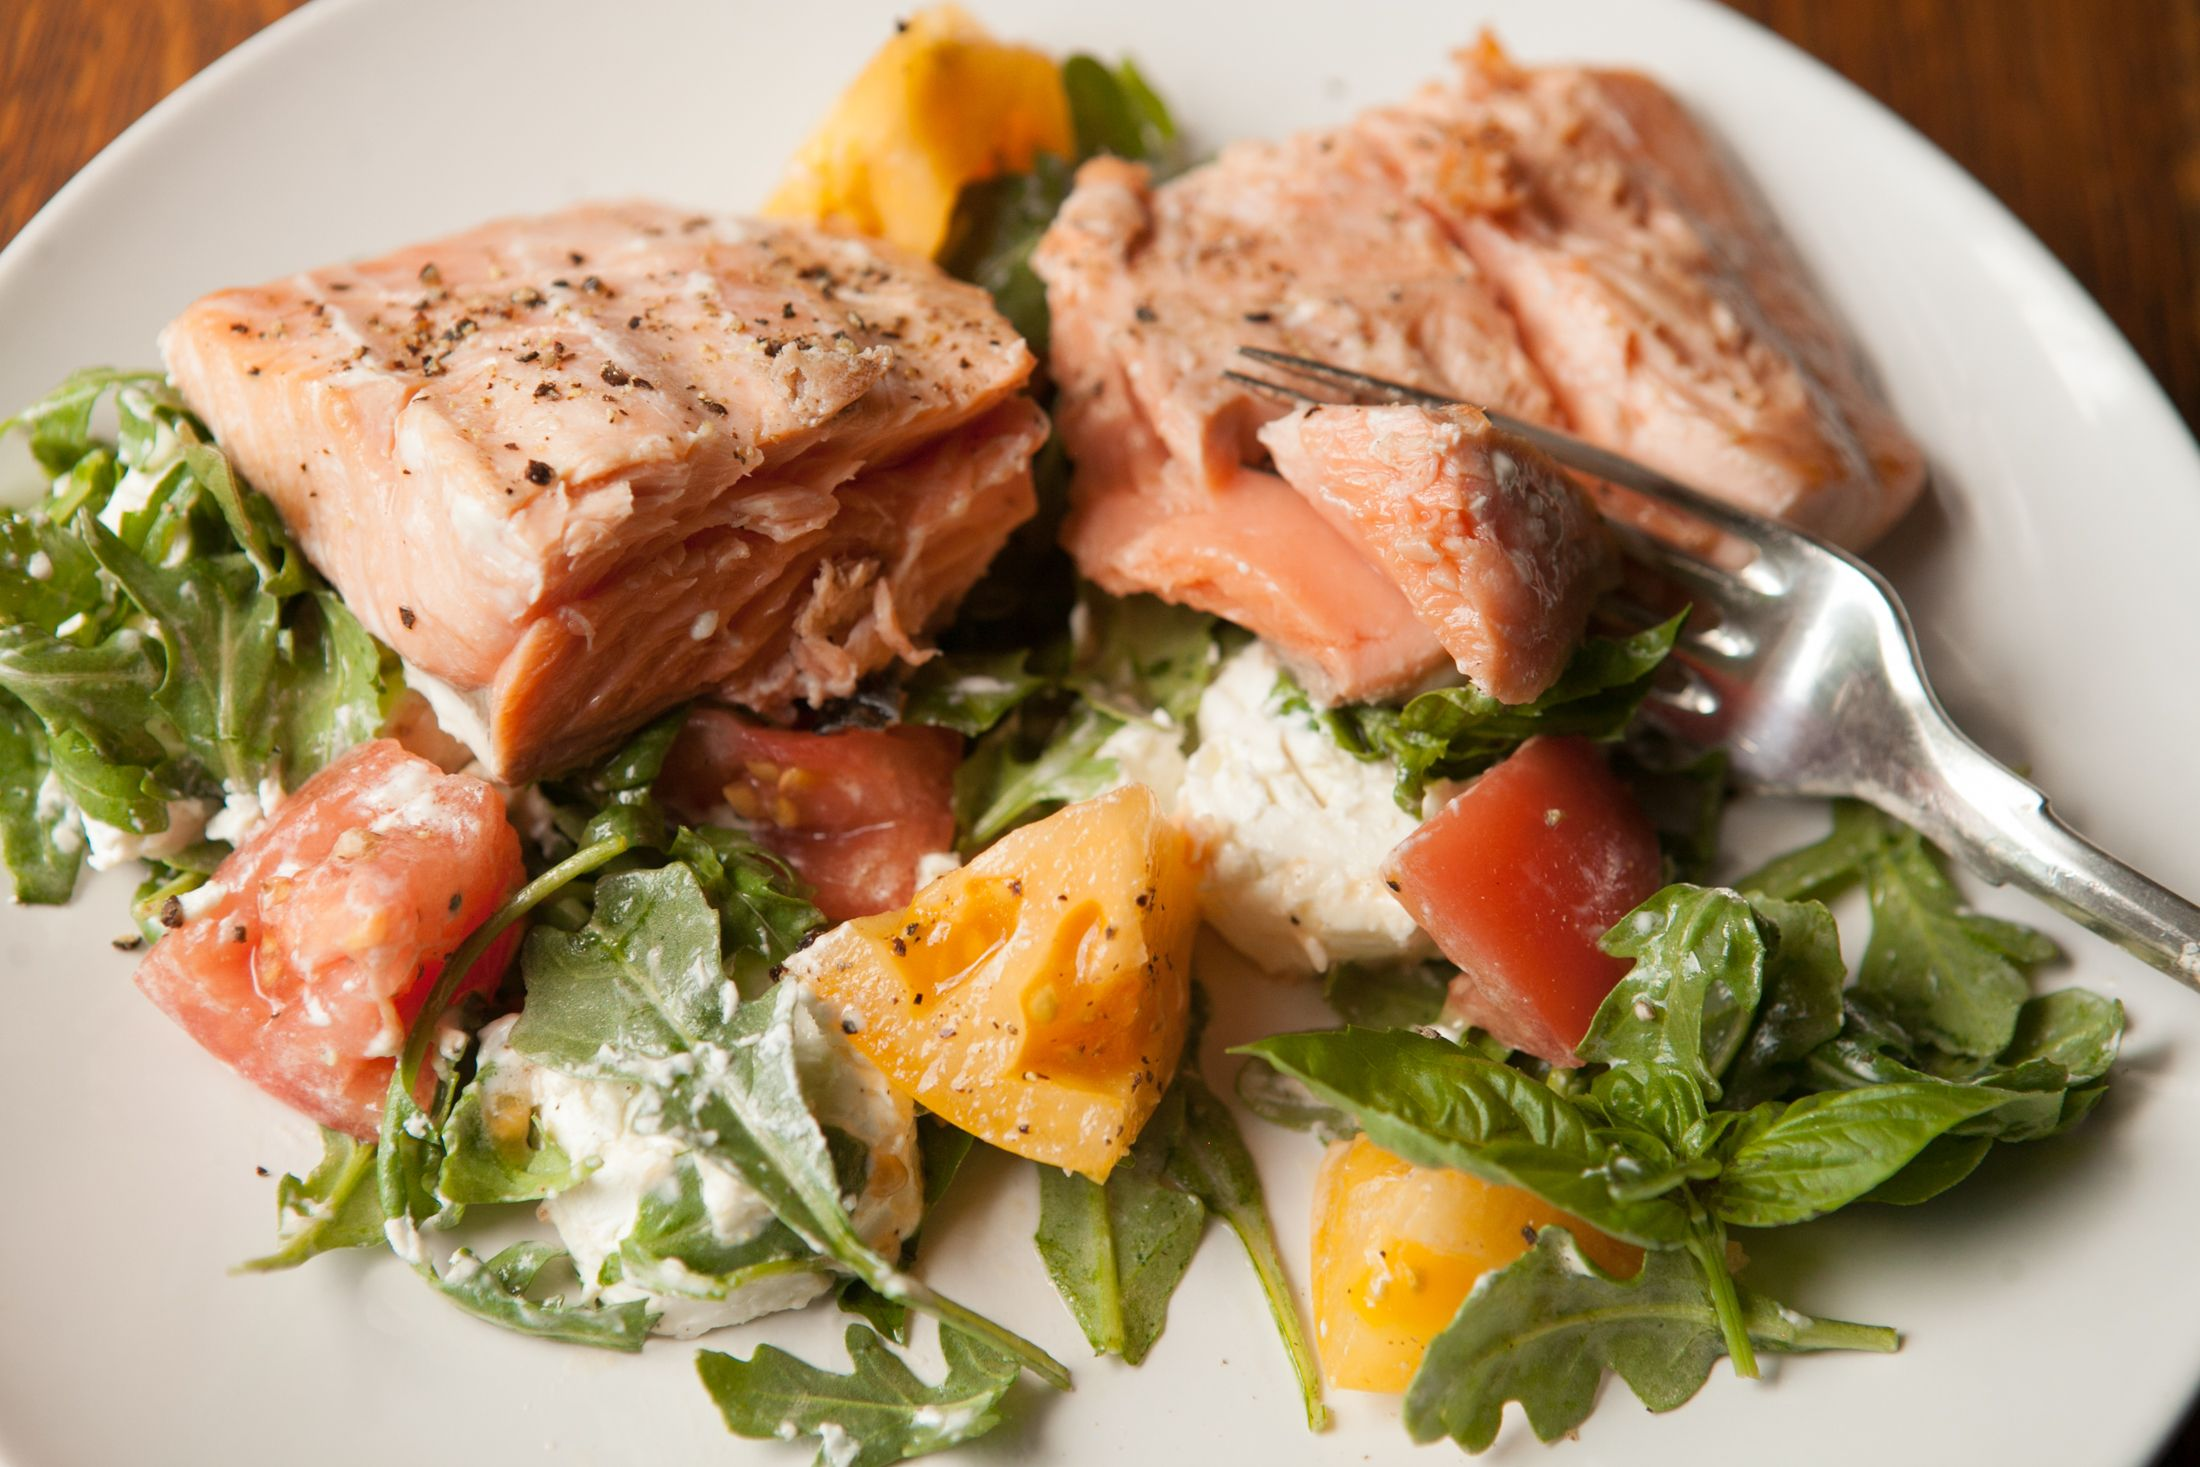 A Few Healthy Recipes Like Ray S Grilled Salmon With Heirloom Tomato And Goat Cheese Salad Styling By Wendell Brock Photography Renee Special